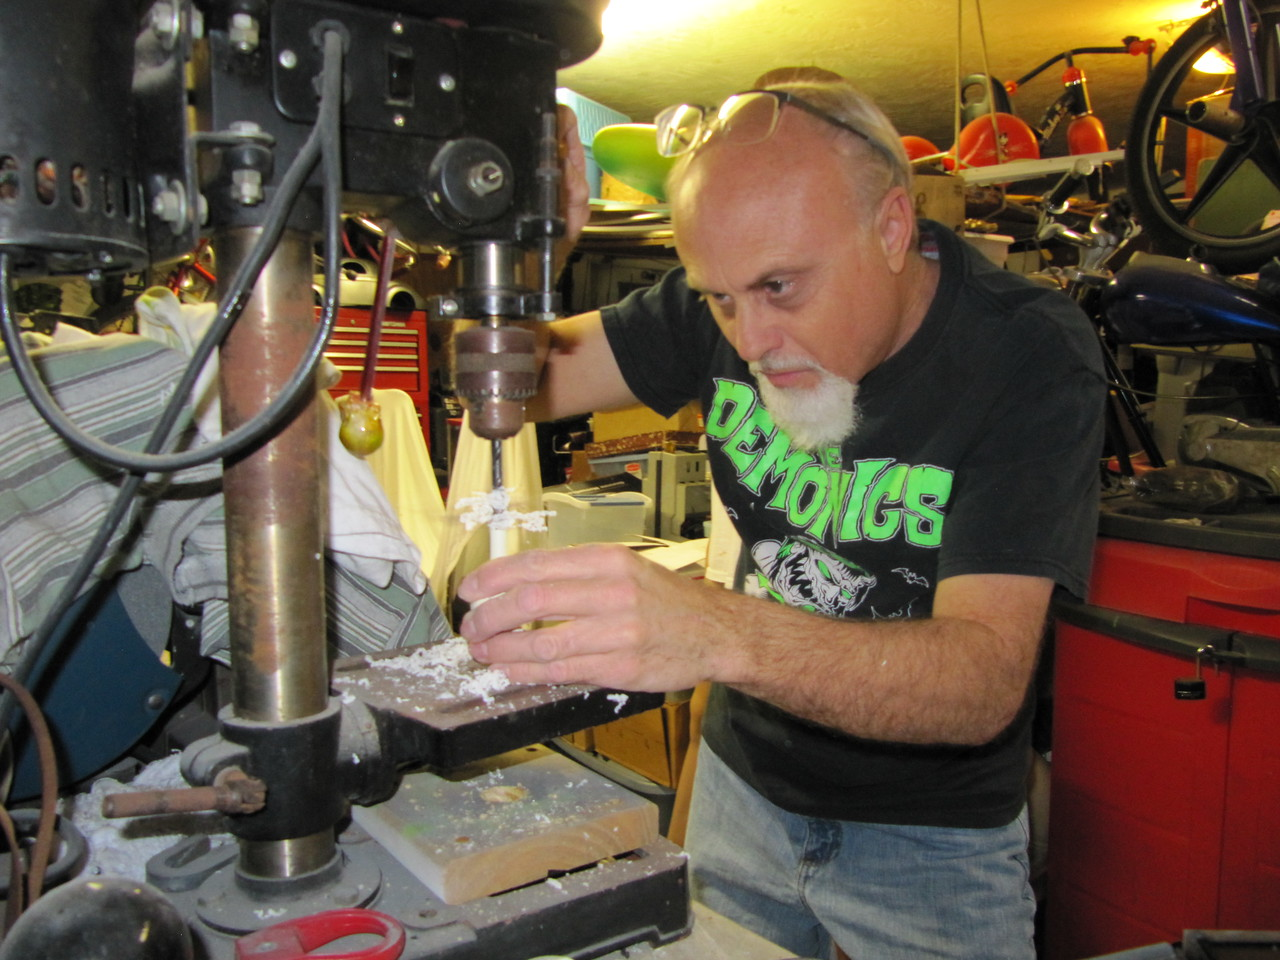 """Drilling out the resin axle for the rare Roth resin kit """"Drag""""?"""